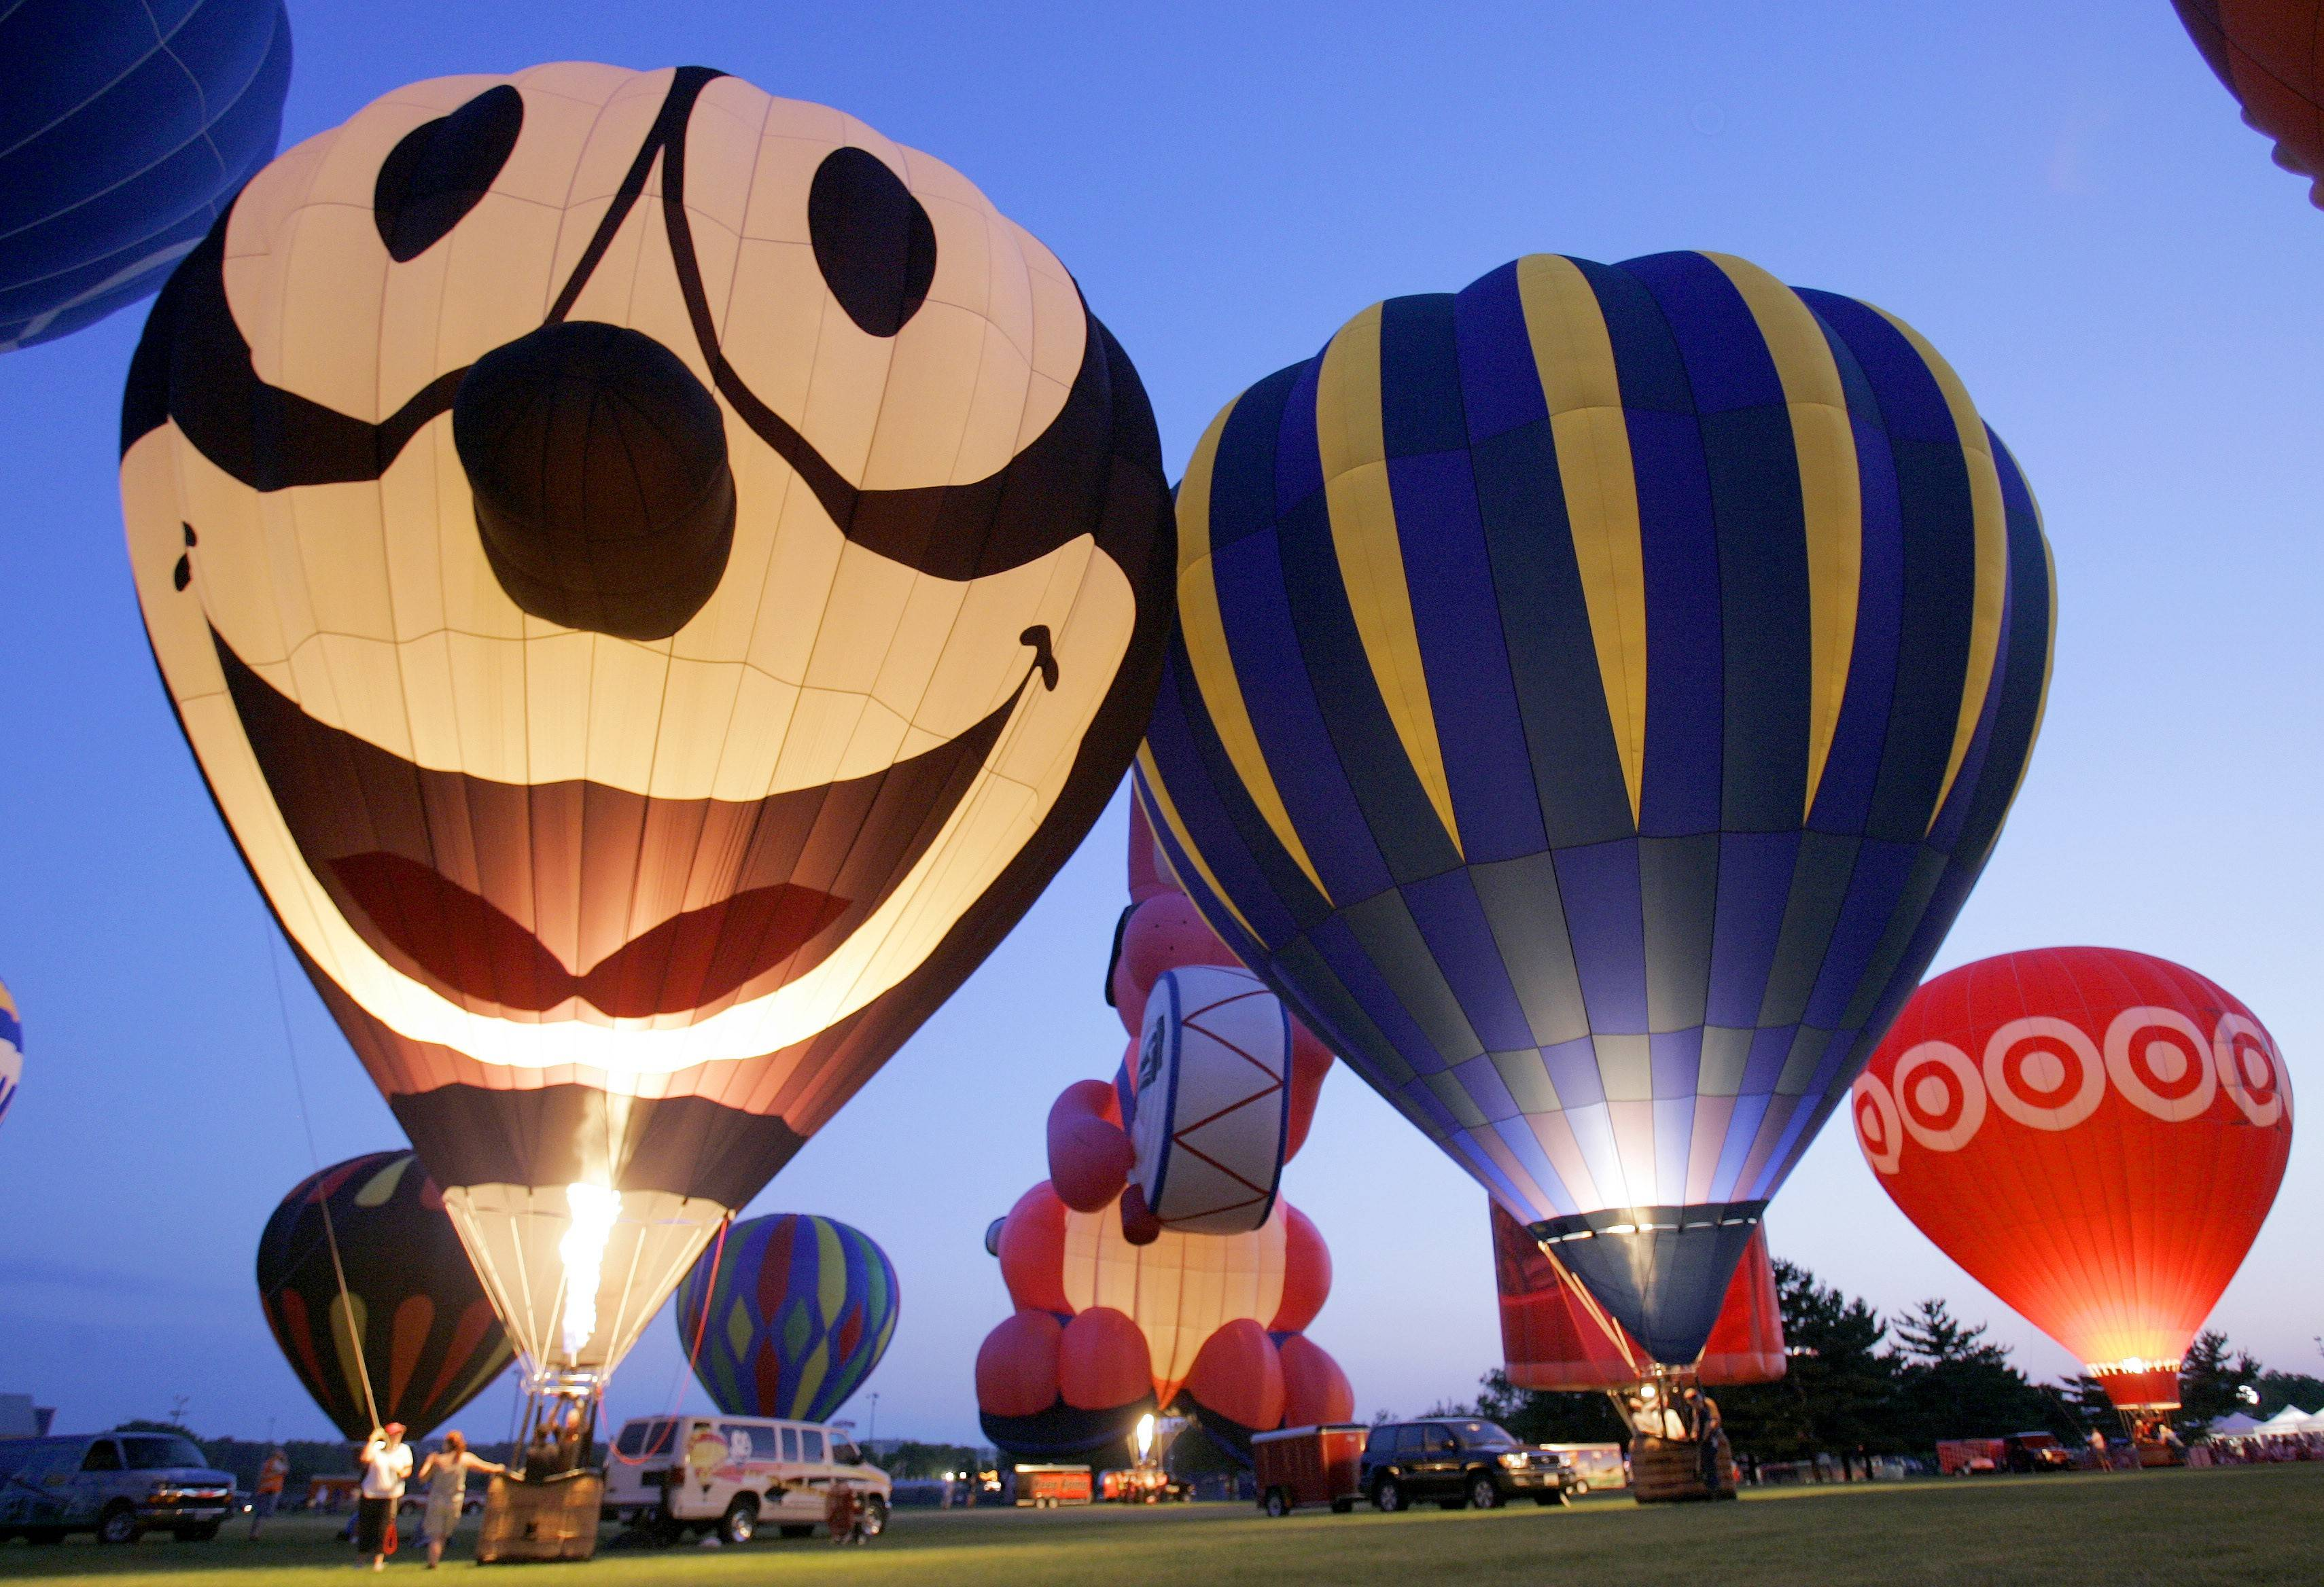 Pilots will inflate and light their balloons during the nightly balloon glows at the Eyes to the Skies festival, running Friday to Sunday, July 1 to 3, in Lisle's Community Park.